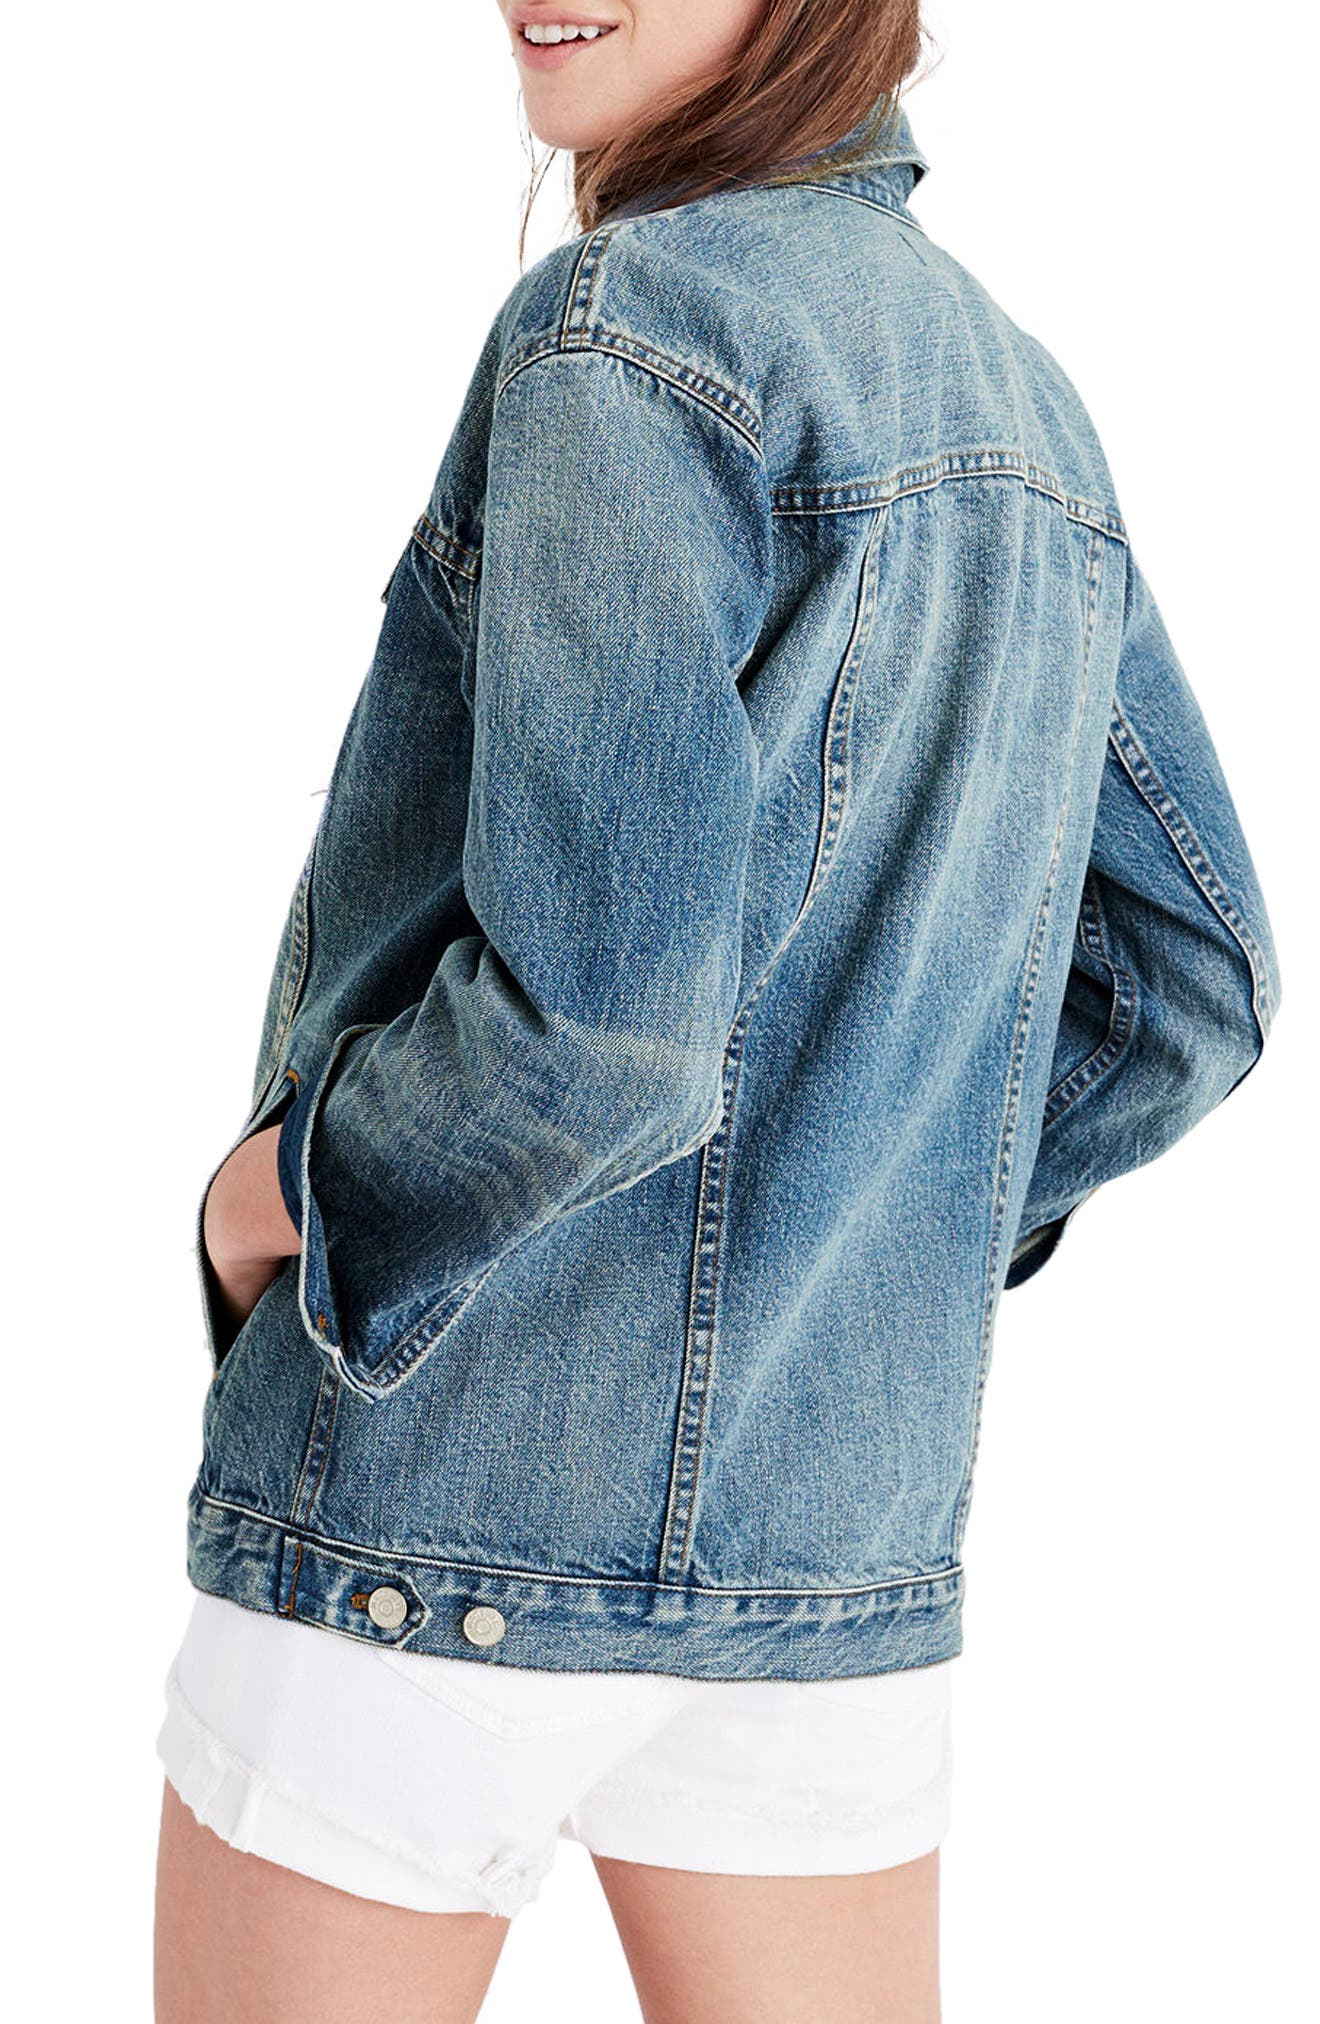 MADEWELL, Oversize Denim Jacket, Alternate thumbnail 2, color, CAPSTONE WASH